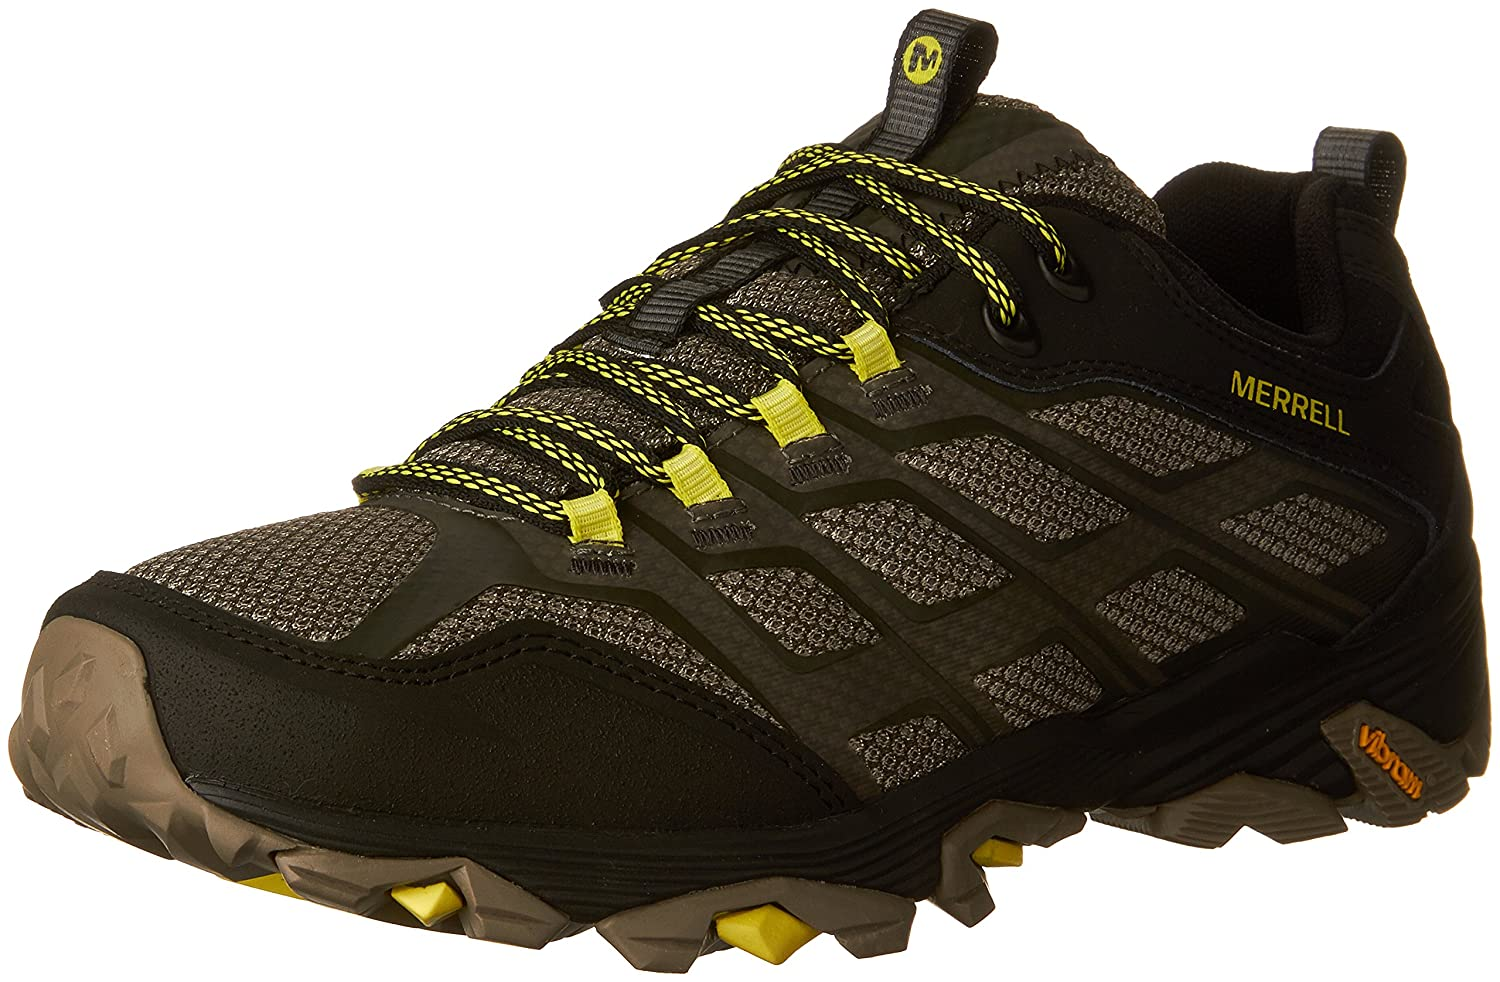 Merrell Men's Moab FST Hiking Shoe B01HFJY6M6 12 D(M) US|Olive Black